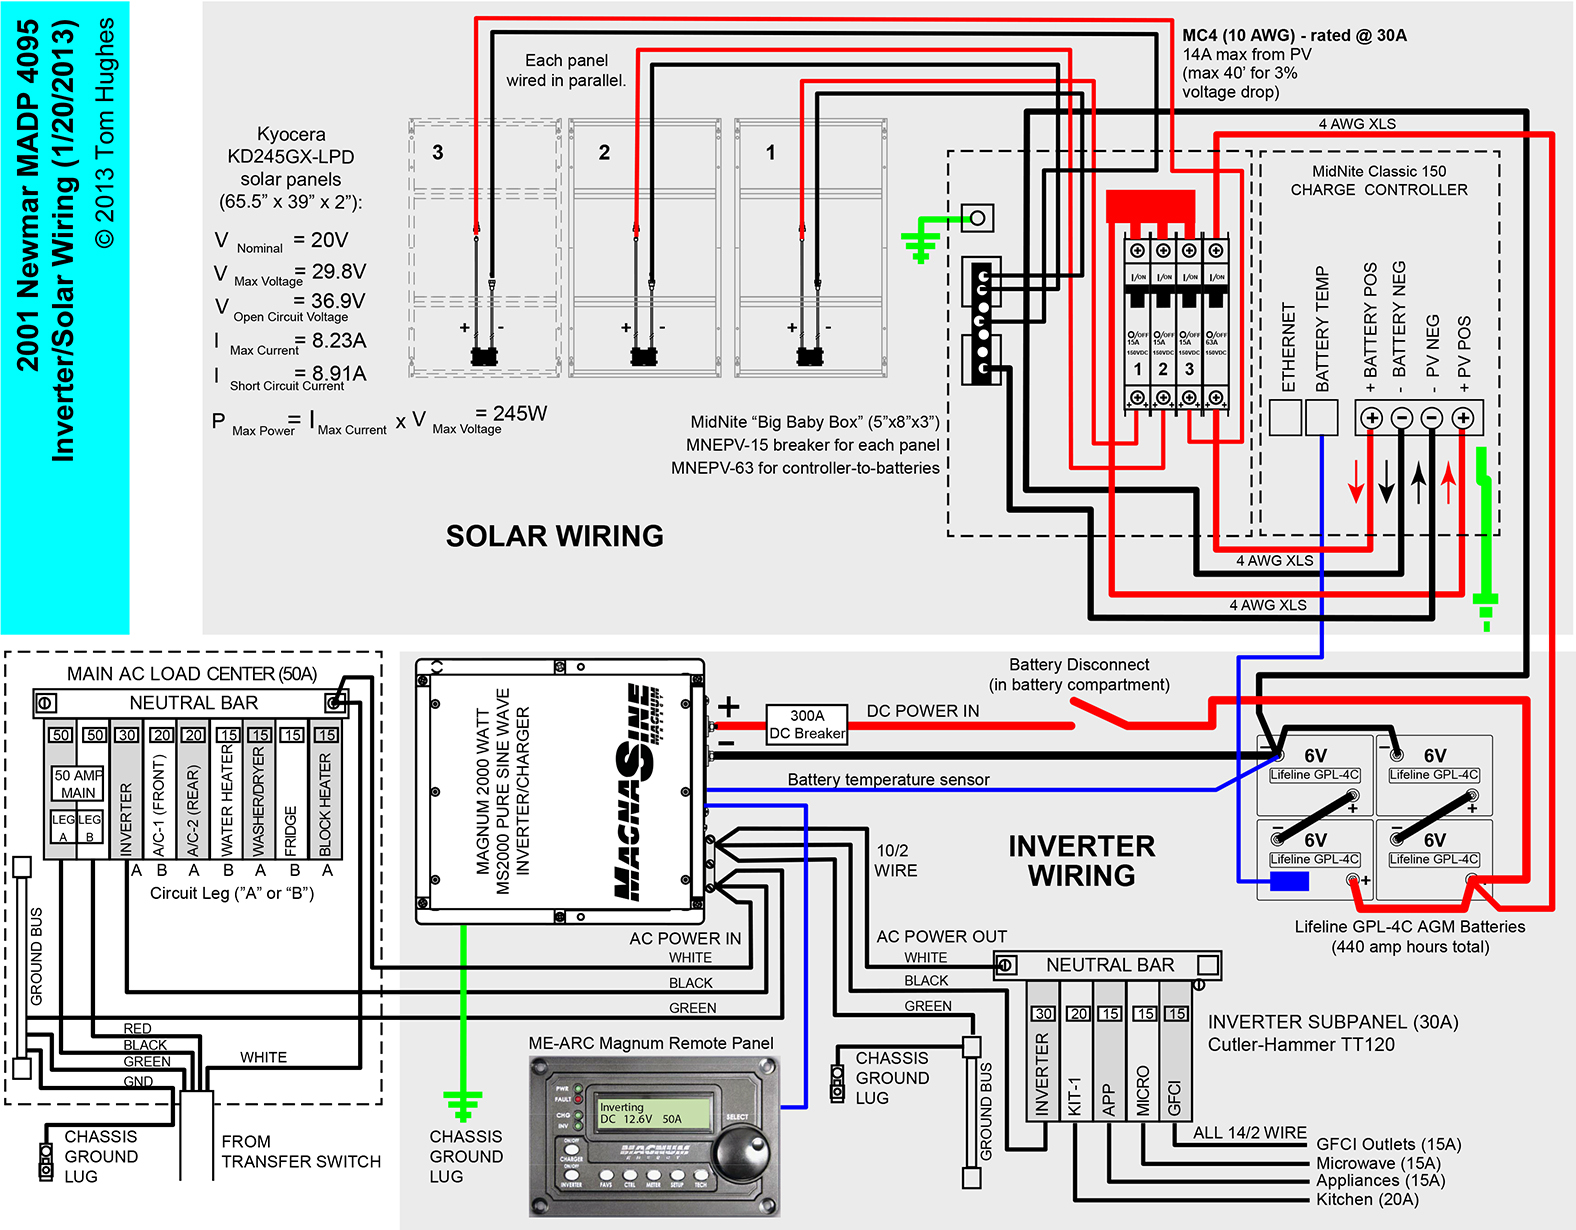 wiring diagram for rv inverter data wiring diagram today 1962 Mobile Home Electrical Wiring Diagram magnum inverter rvseniormoments motorhome inverter wiring diagrams click to enlarge the image